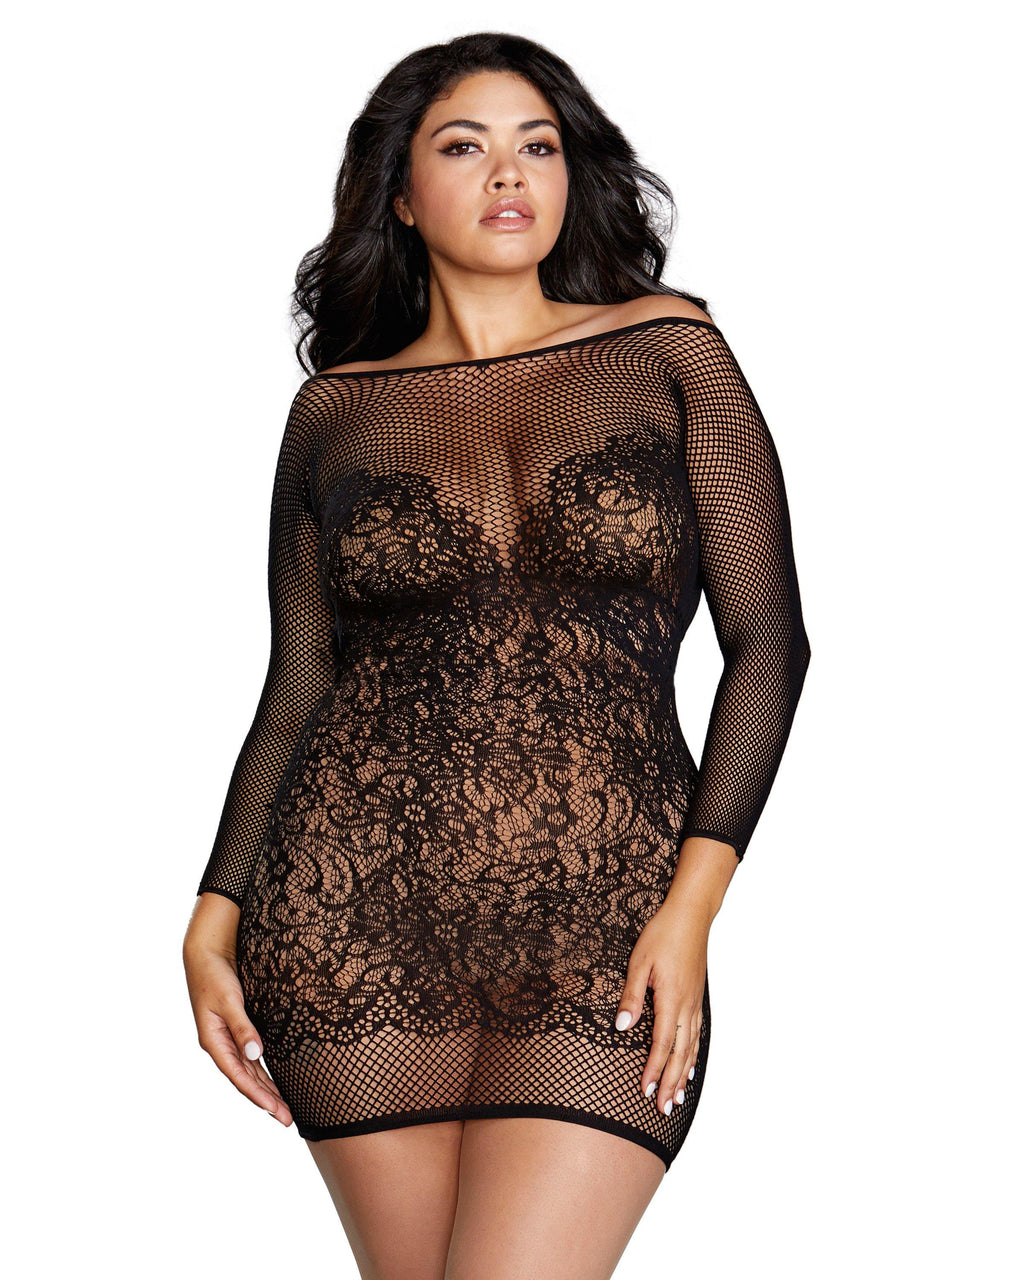 Plus Size Fishnet & Lace Versatile Long-Sleeved Chemise Chemise Dreamgirl International